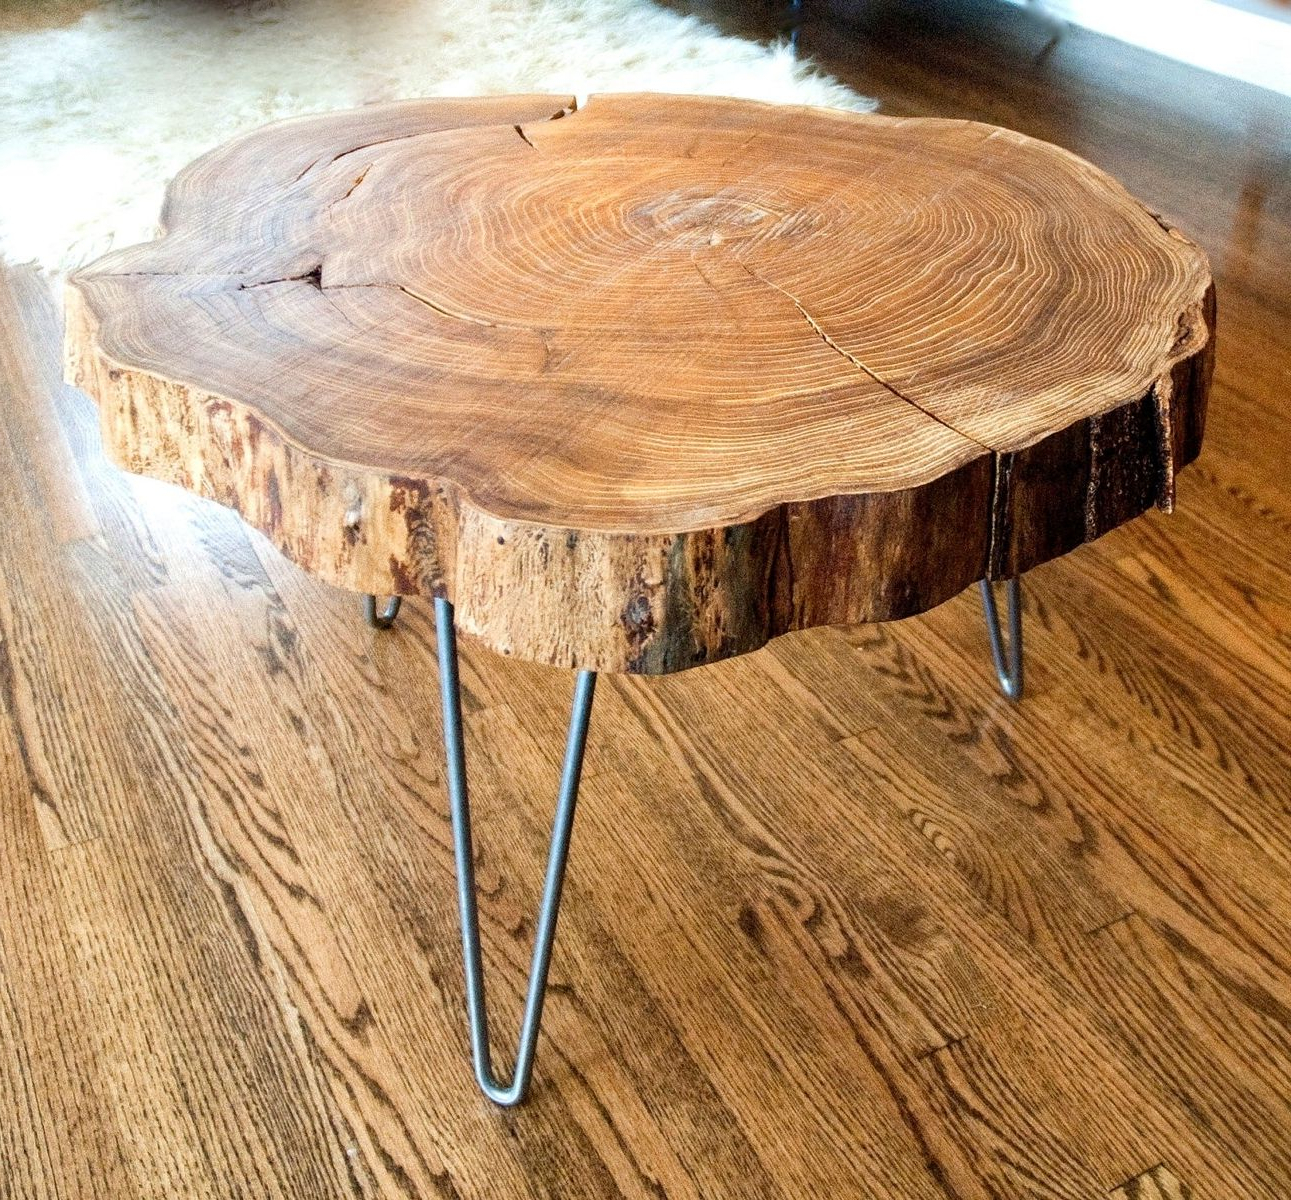 Custom Made Natural Live Edge Round Slab Side Table / Coffee Table Inside Most Current Live Edge Teak Coffee Tables (Gallery 15 of 20)